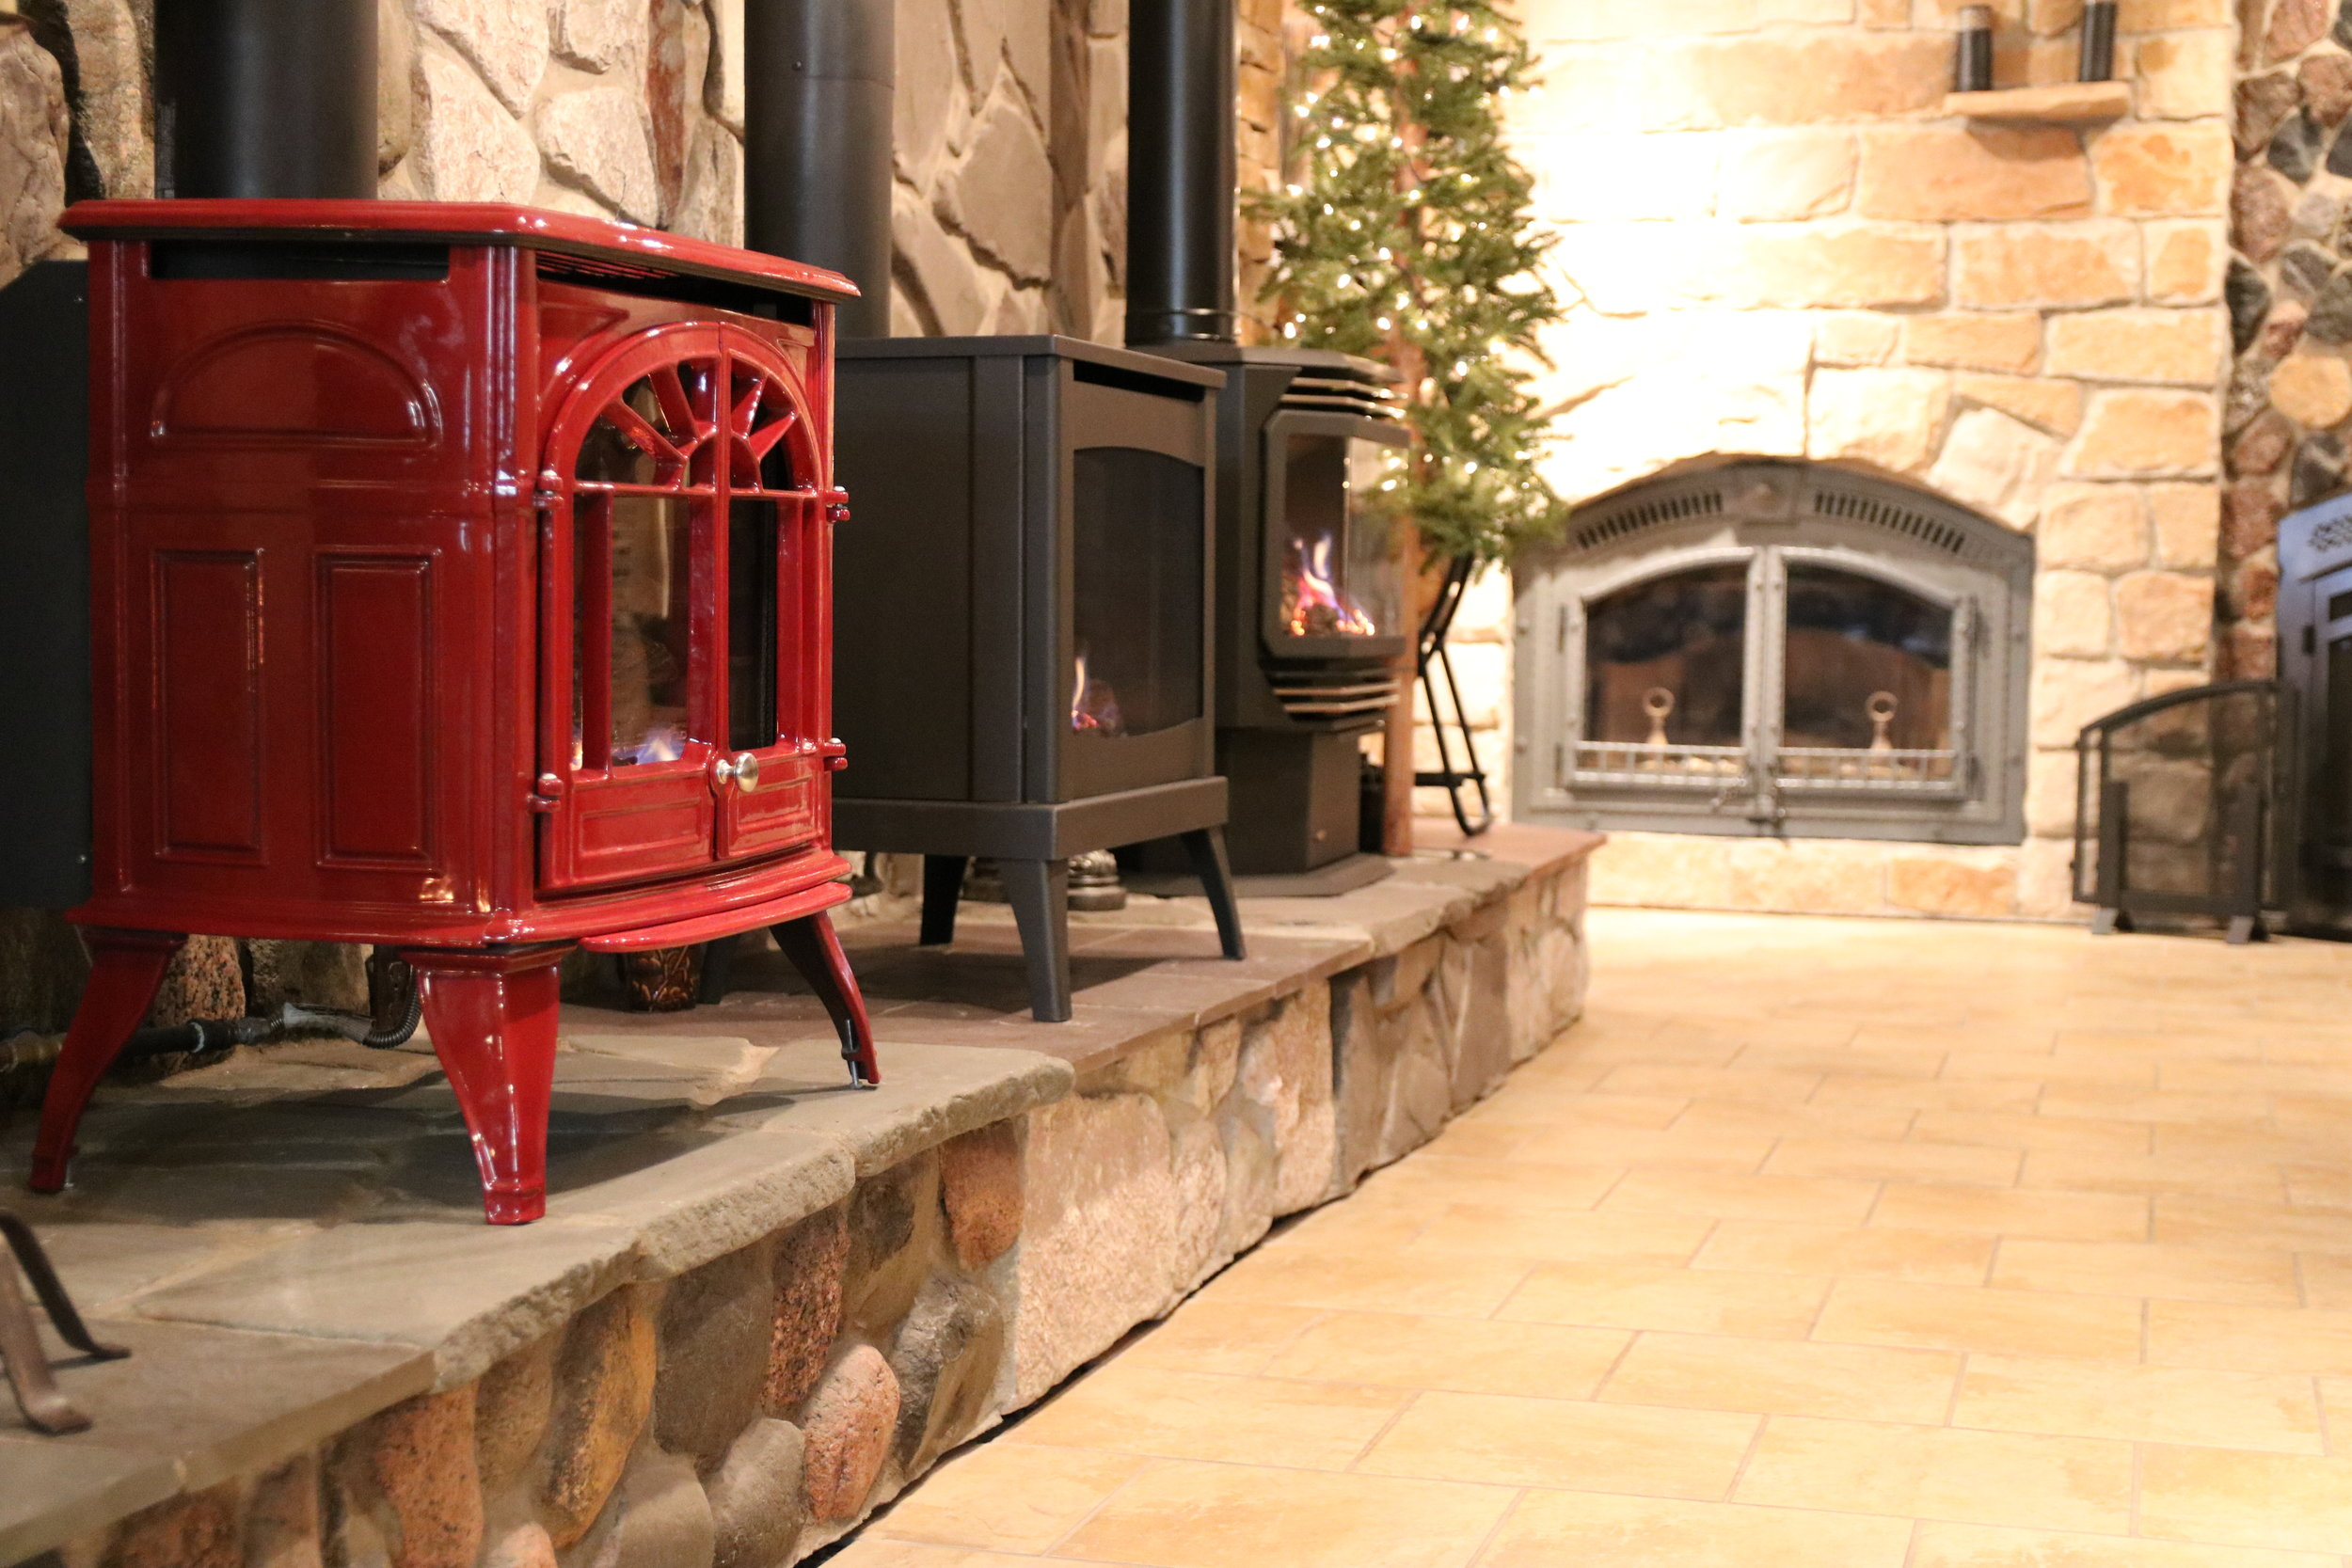 Westport Gas Stove Red to the Left.jpeg